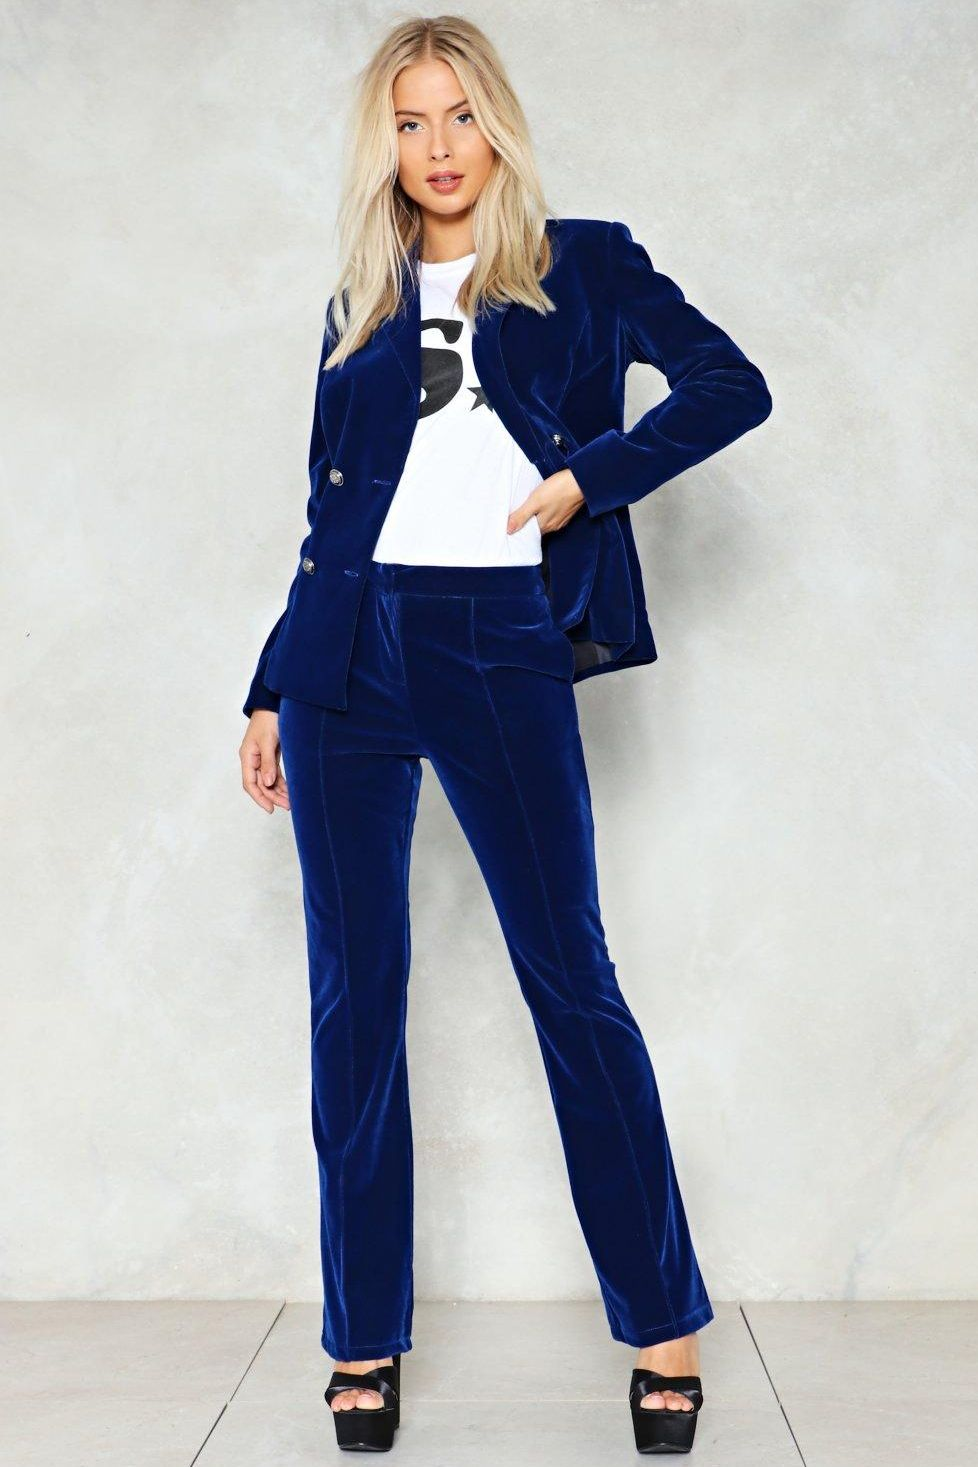 prom jumpsuit for girls